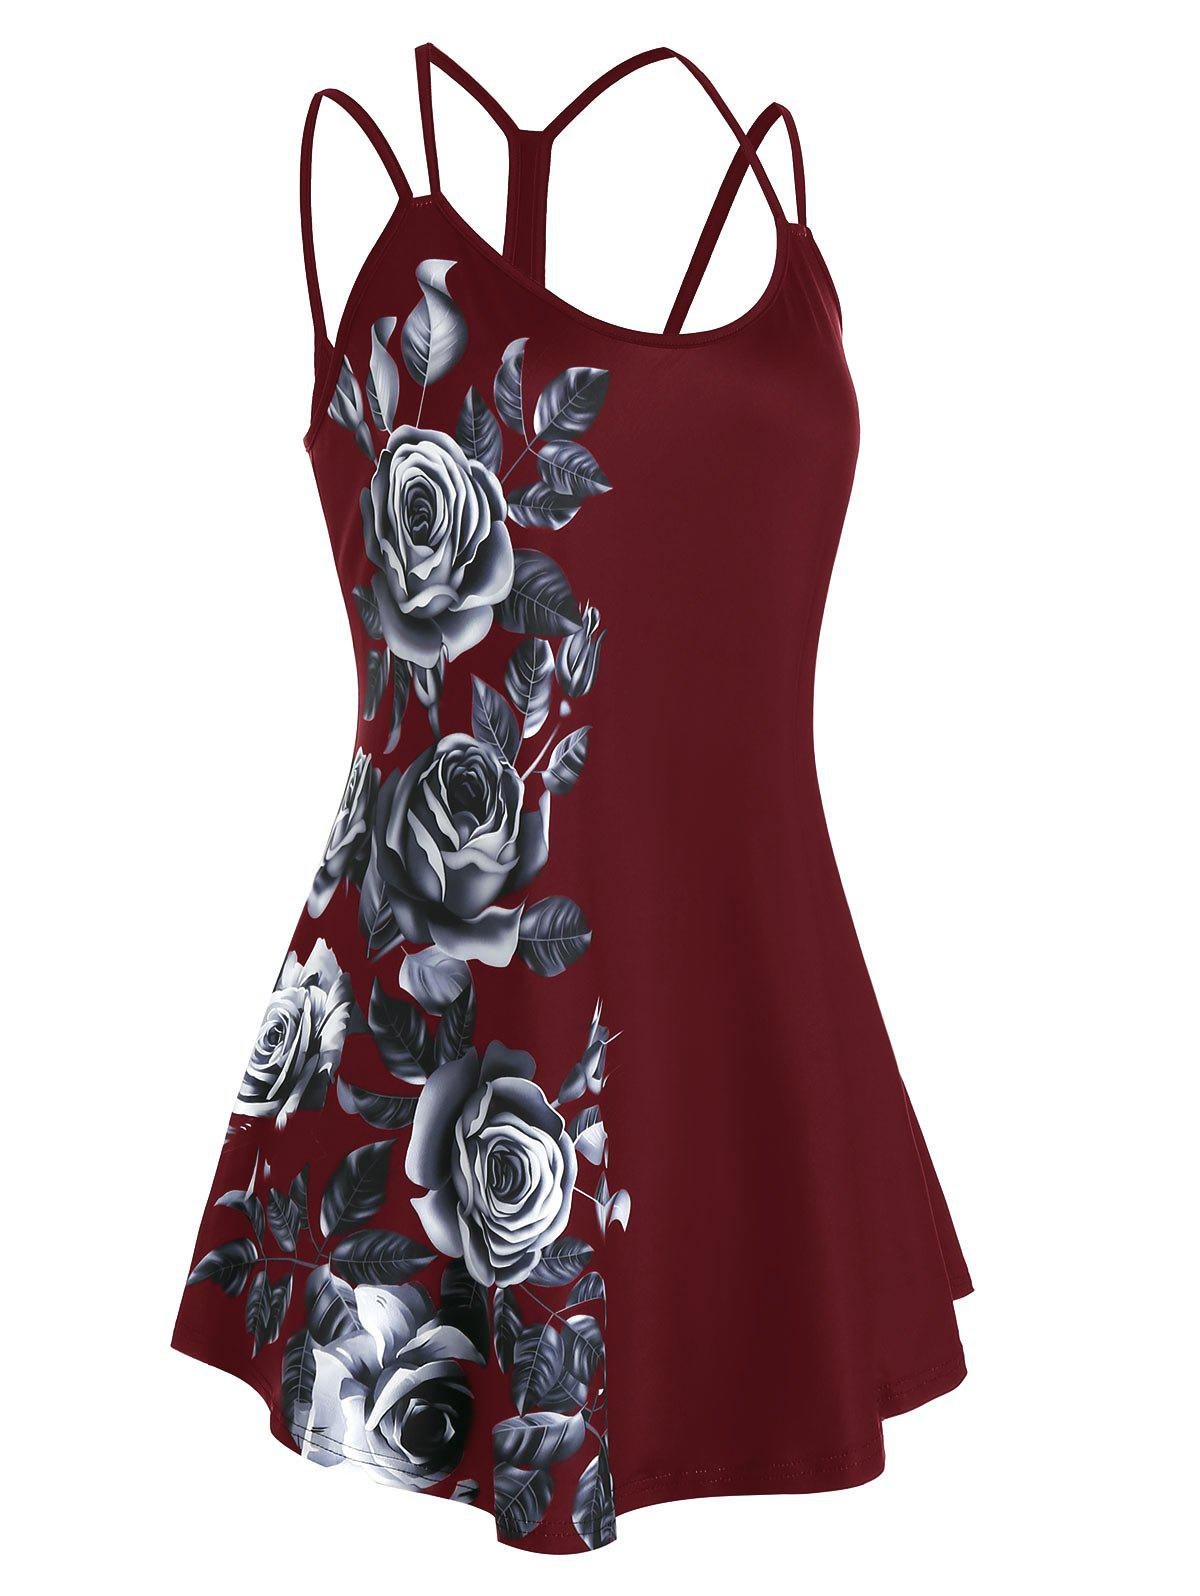 Affordable Plus Size Floral Print Cutout Cami Top